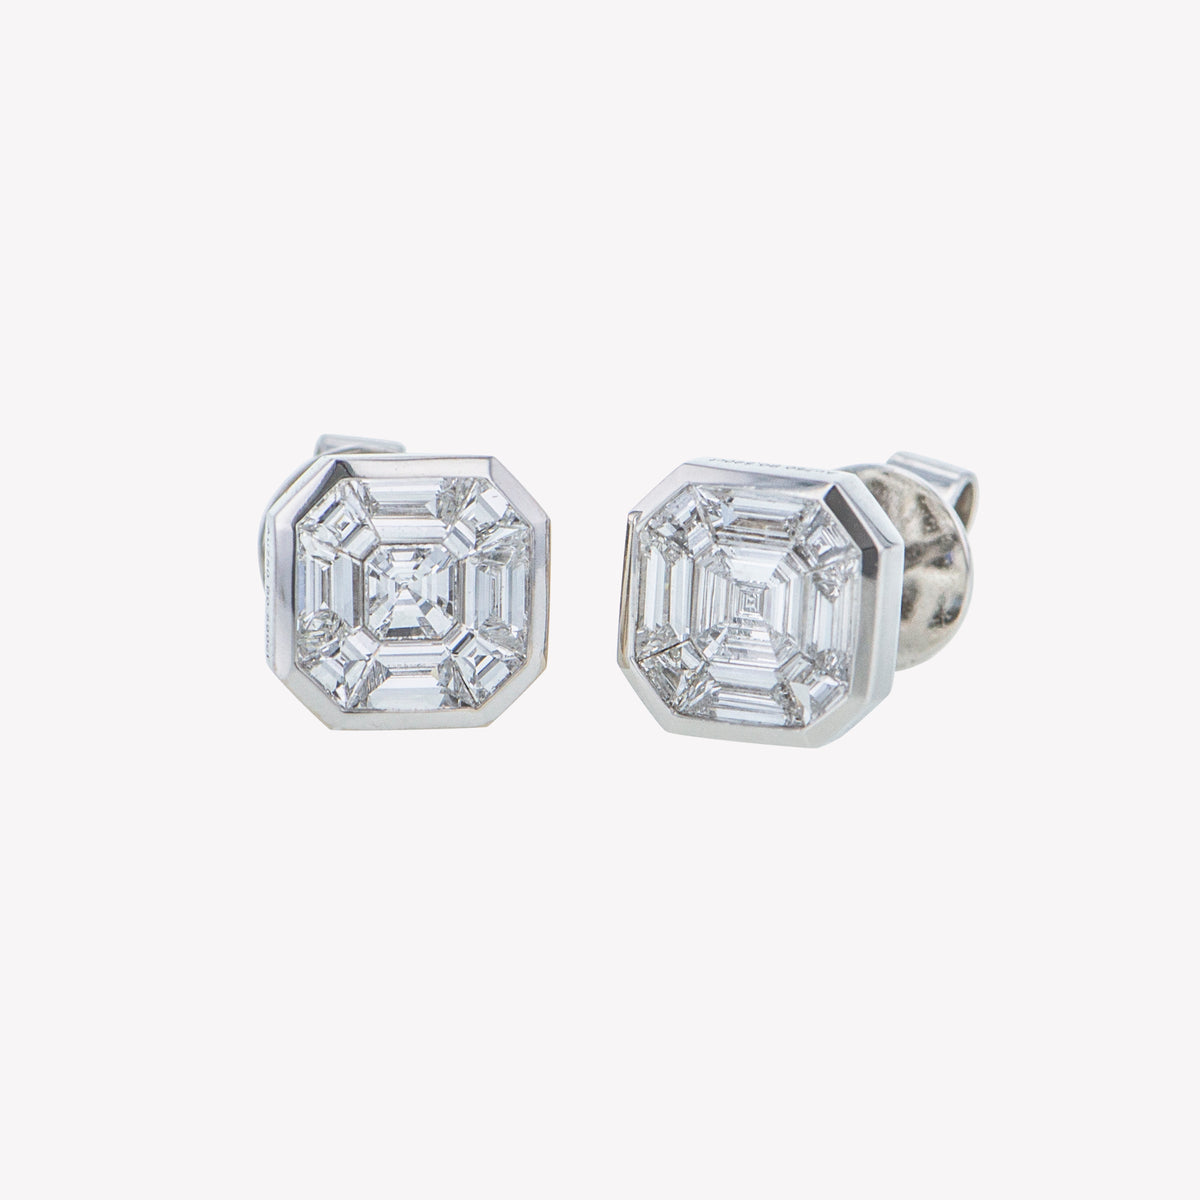 White Gold Asscher Studs Diamond Earrings